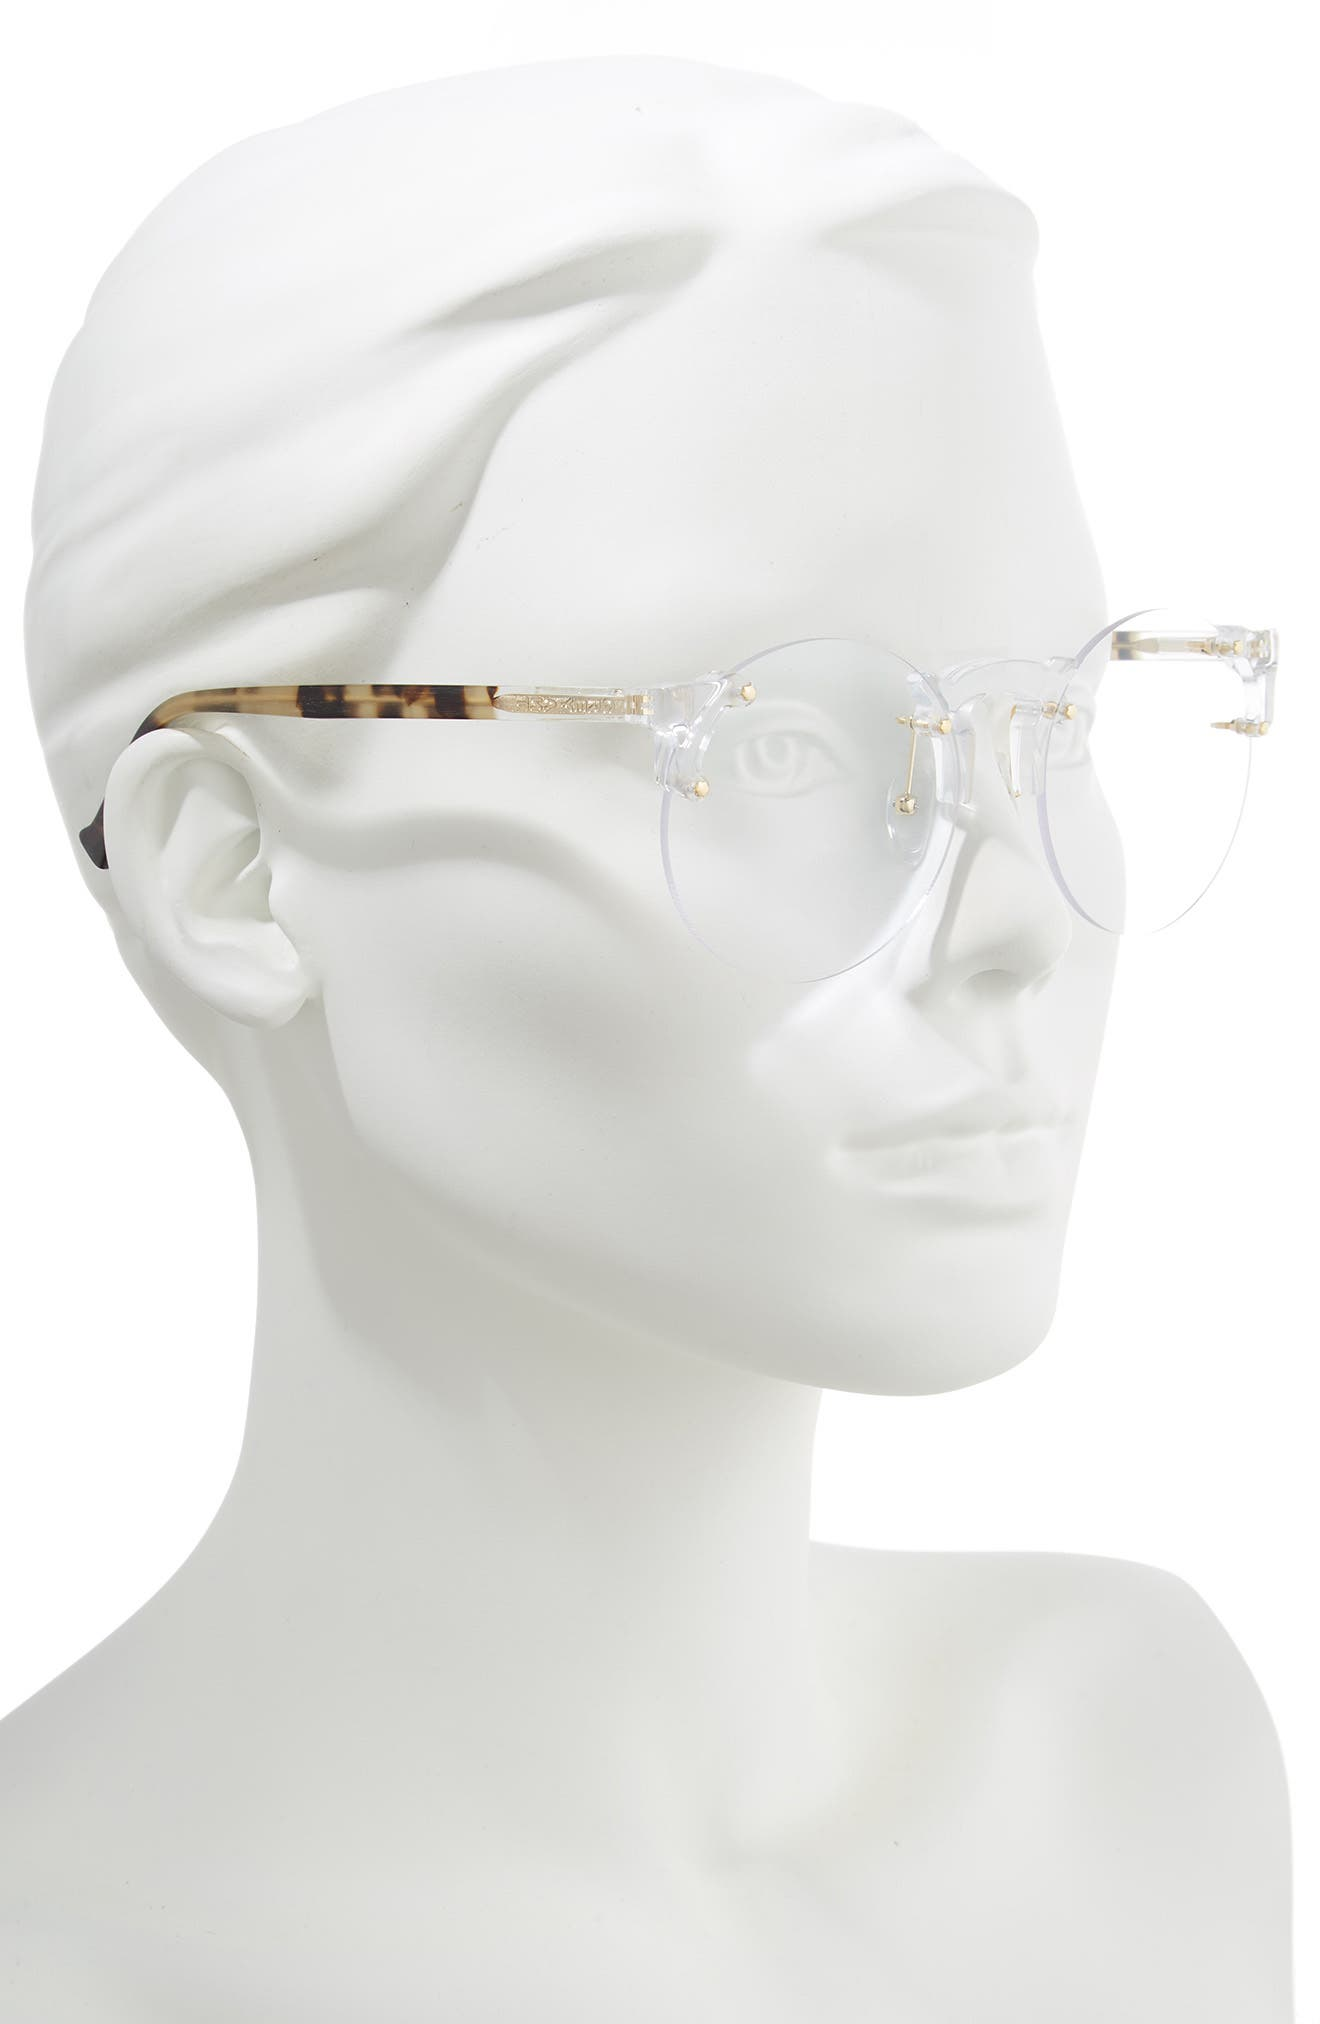 Solo 57mm Rimless Optical Glasses,                             Alternate thumbnail 2, color,                             CLEAR/ GOLD